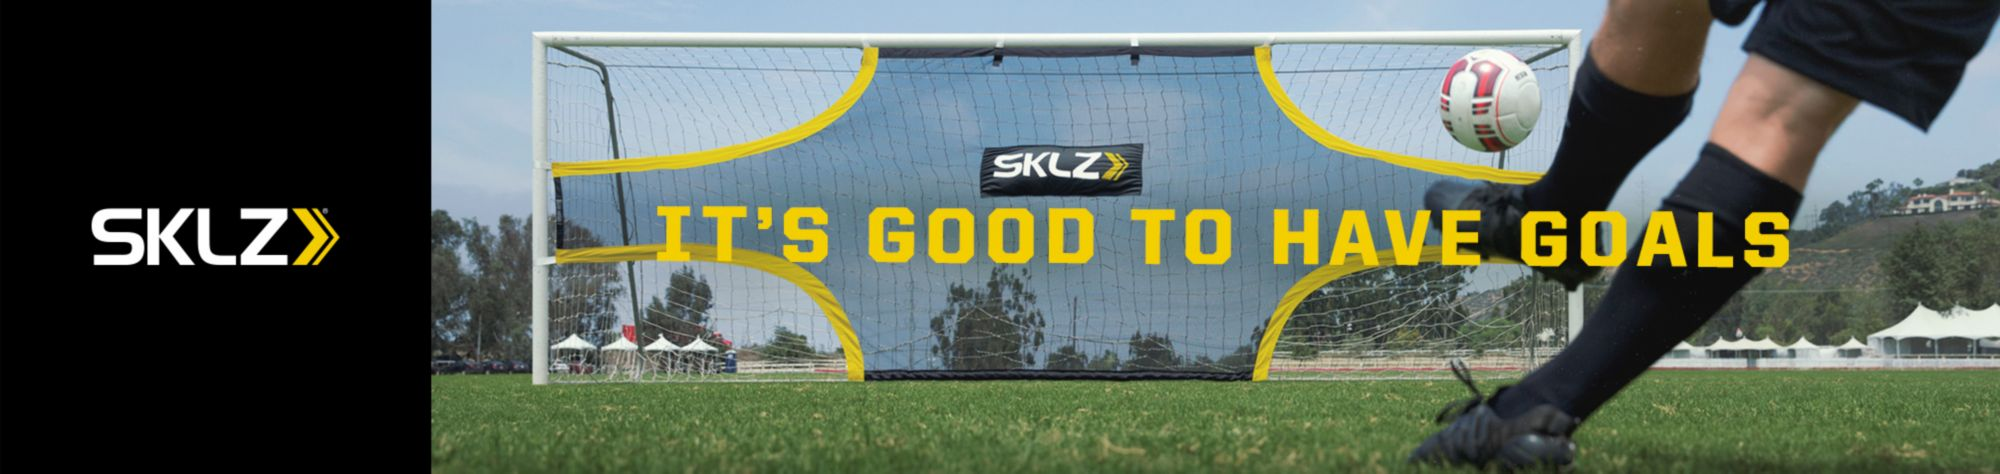 SKLZ Soccer Gear - Shop Now